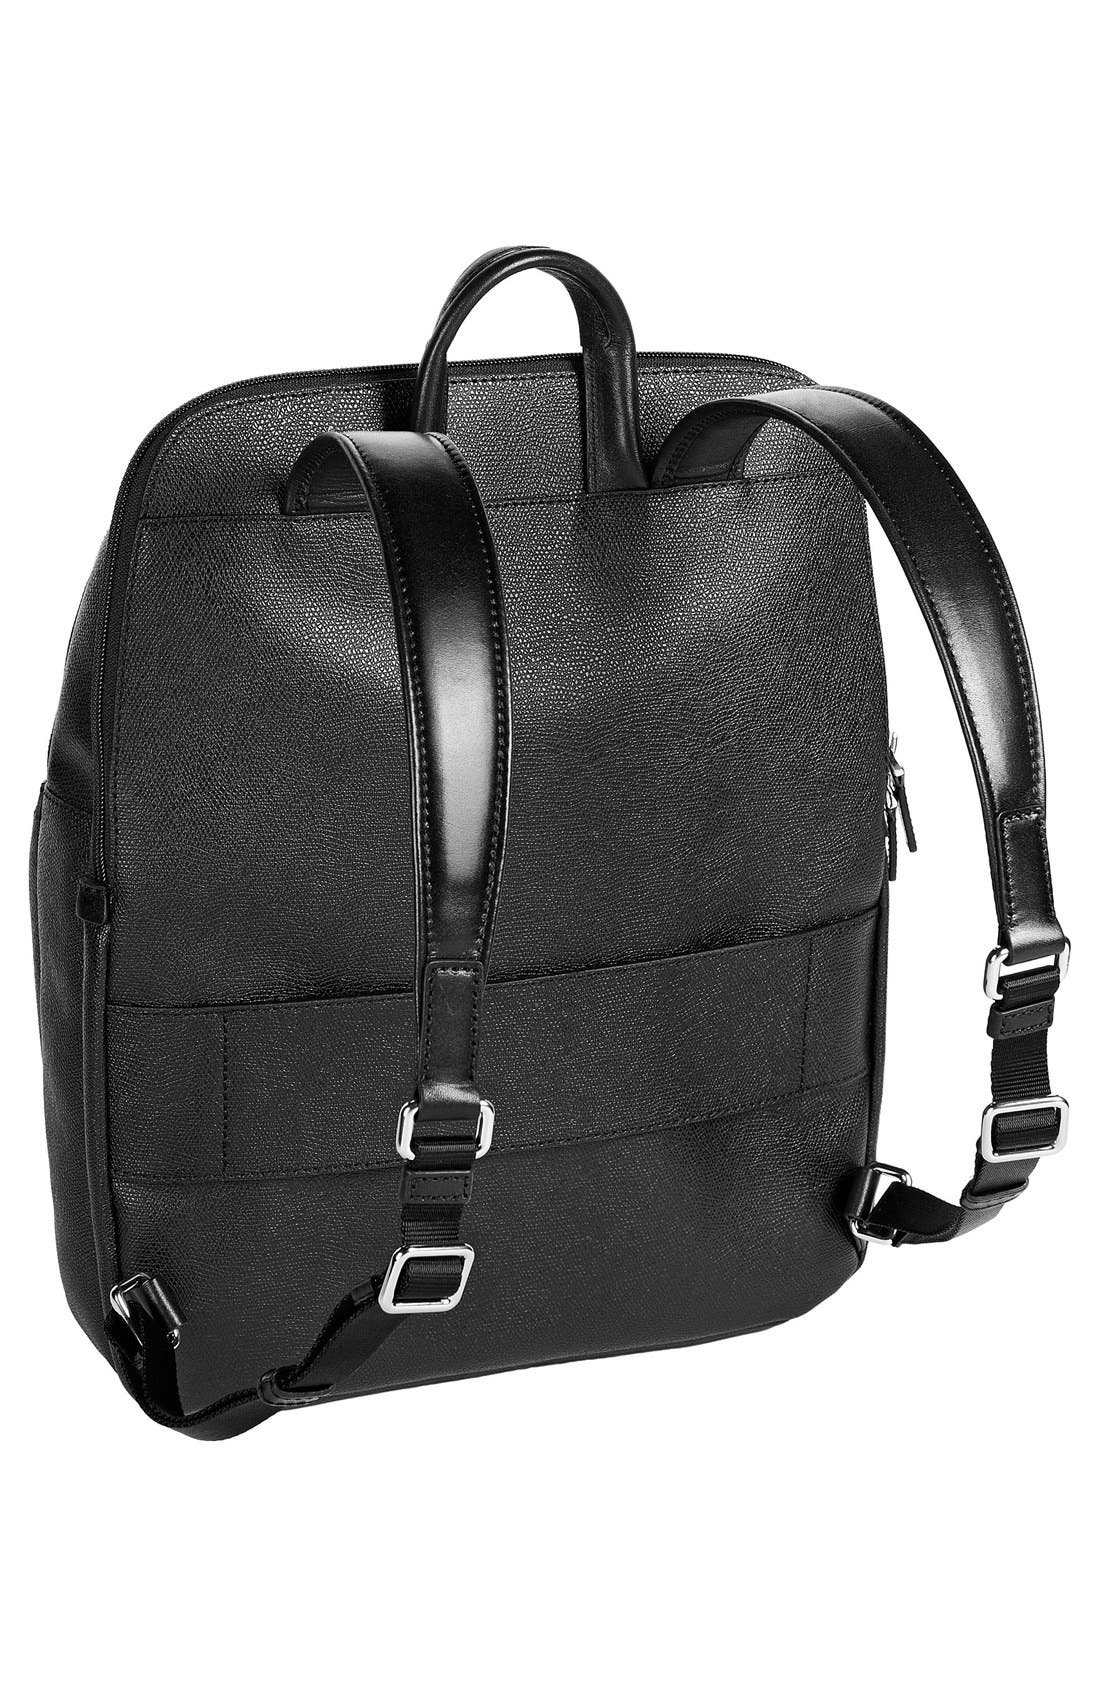 'Sinclair Harlow' Coated Canvas Laptop Backpack,                             Alternate thumbnail 3, color,                             002